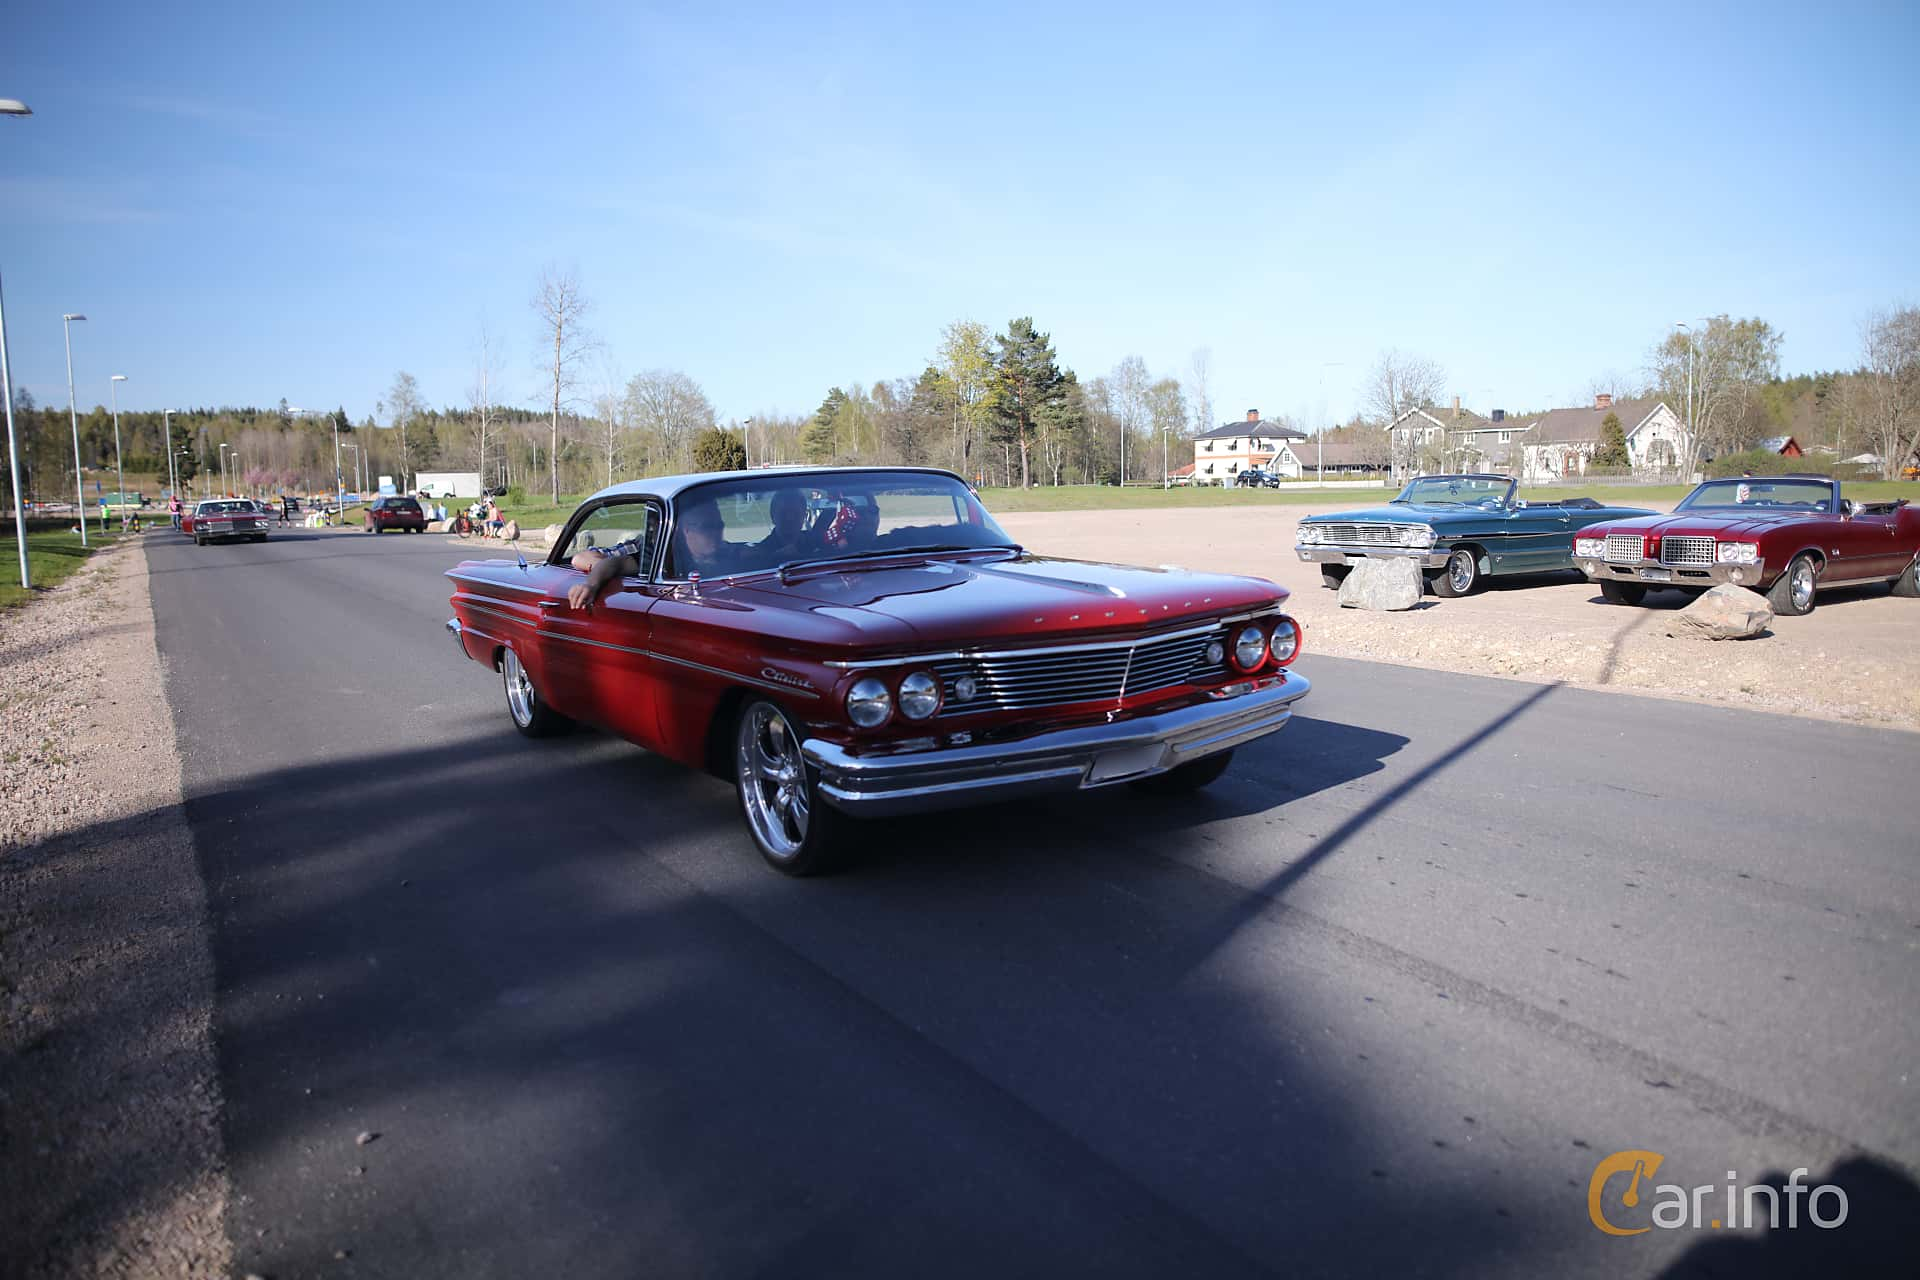 3 Images Of Pontiac Catalina 2 Door Hardtop 64 V8 Automatic 264hp 1960 Front Side 264ps